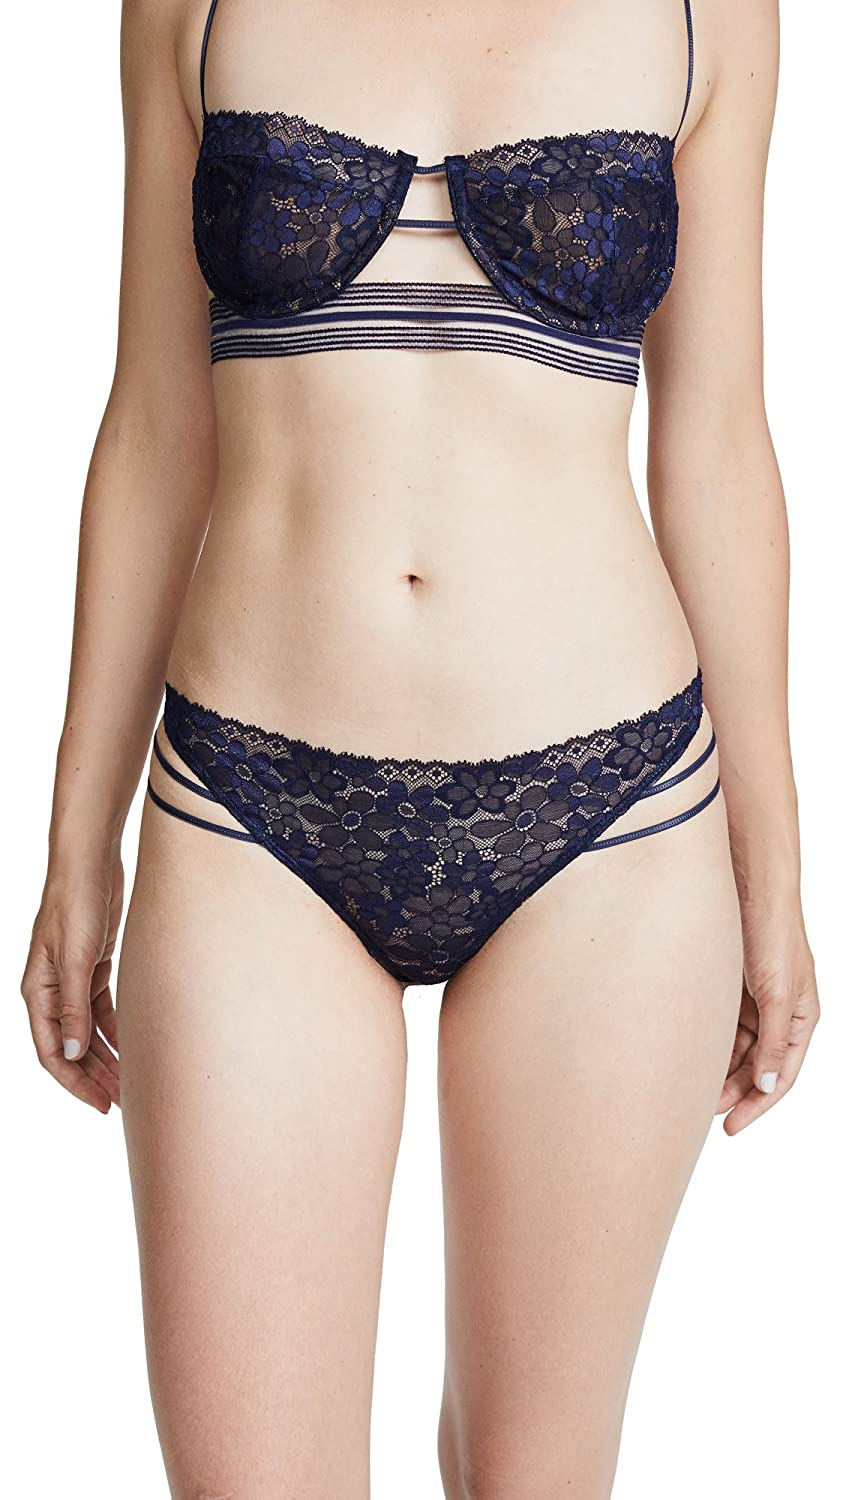 For Love & Lemons Women's Mia Lace Strappy Thong